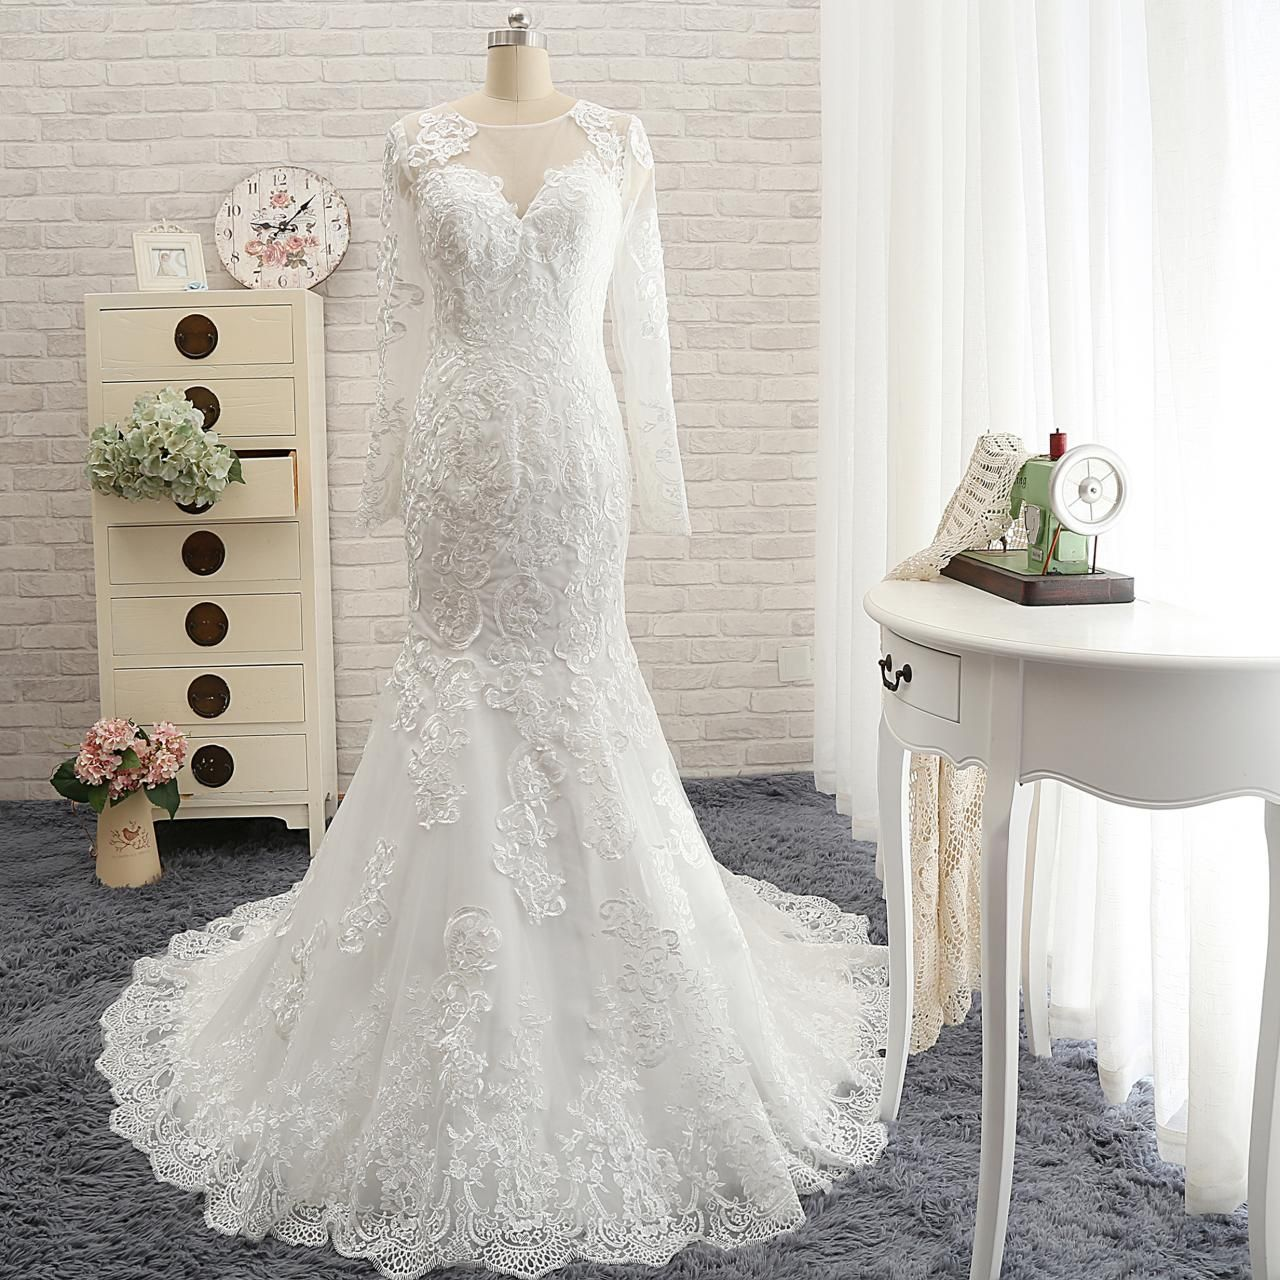 Full lace mermaid wedding dresslong sleeves lace wedding wedding